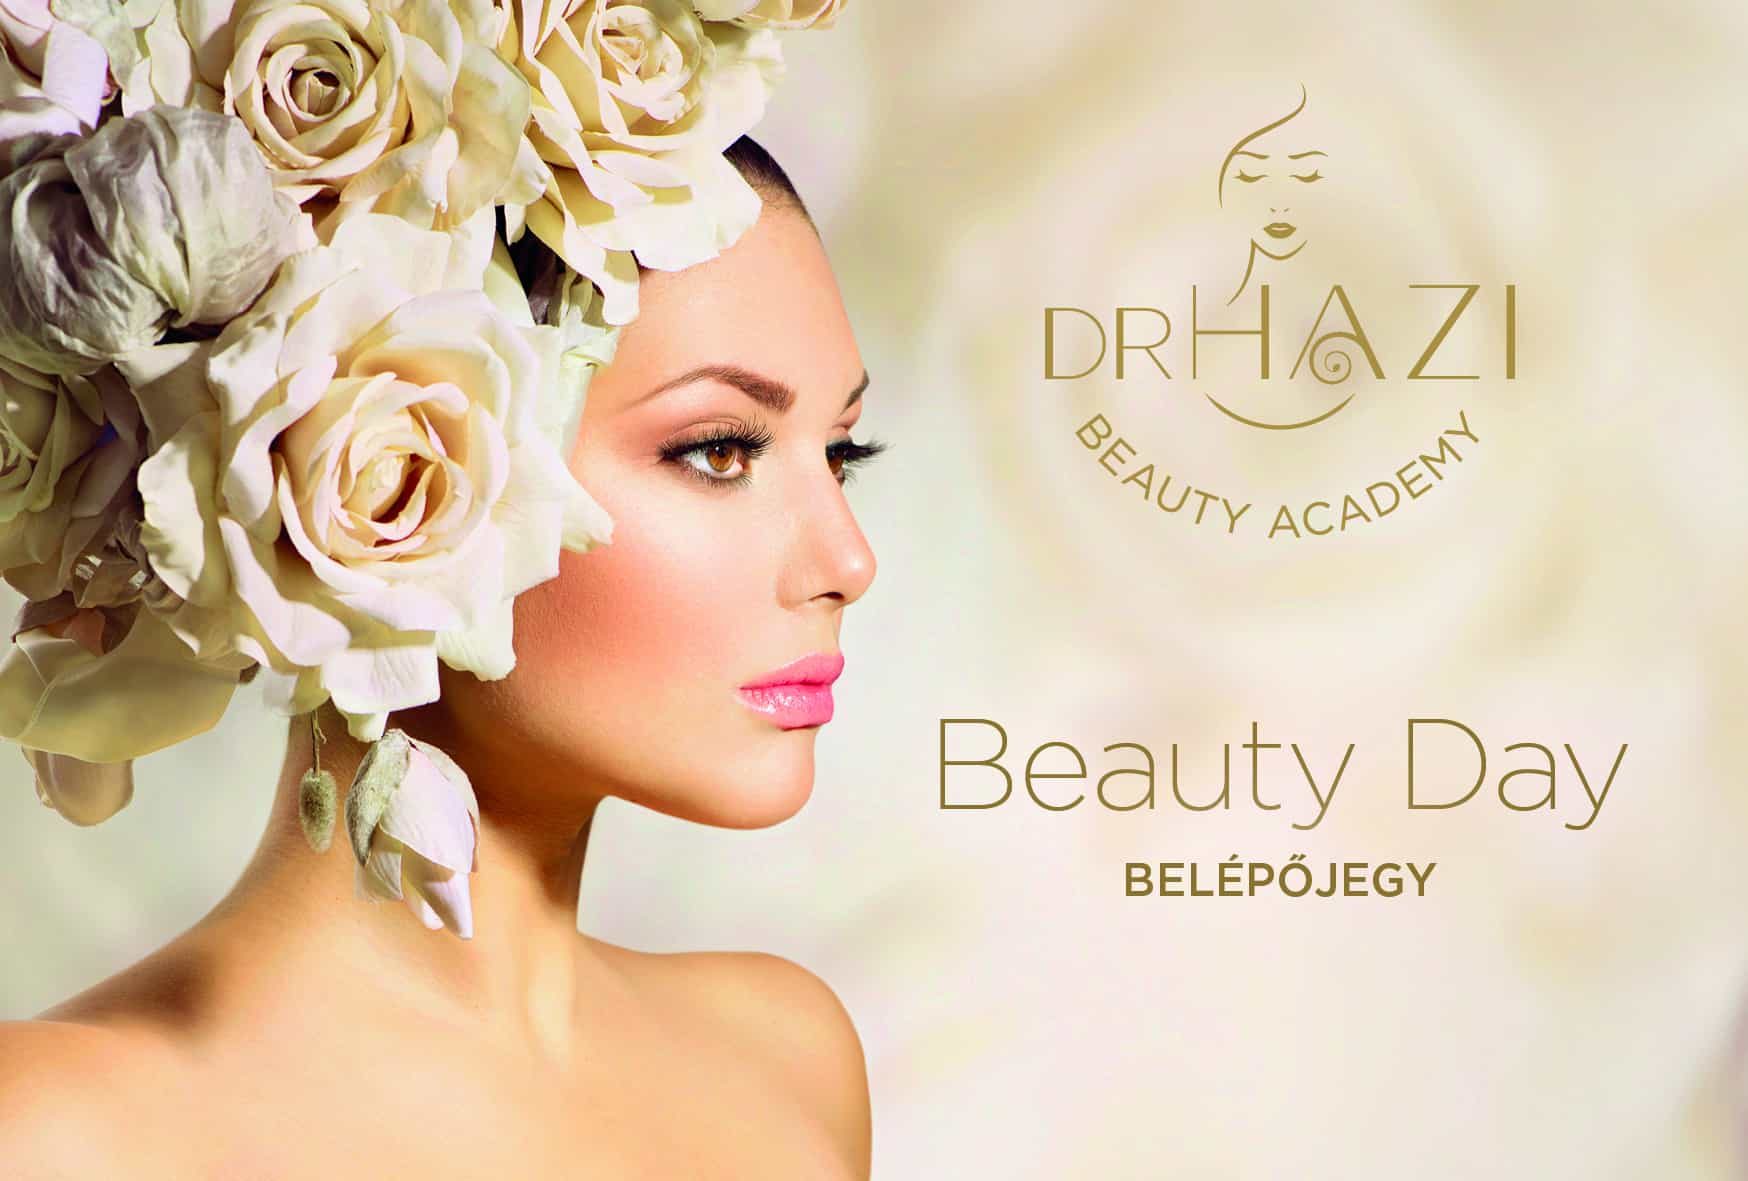 AGELESS BEAUTY NANOPEPTIDES BŐRÉPÍTÉS DRHAZI Beauty Nap 2020. 03. 07.